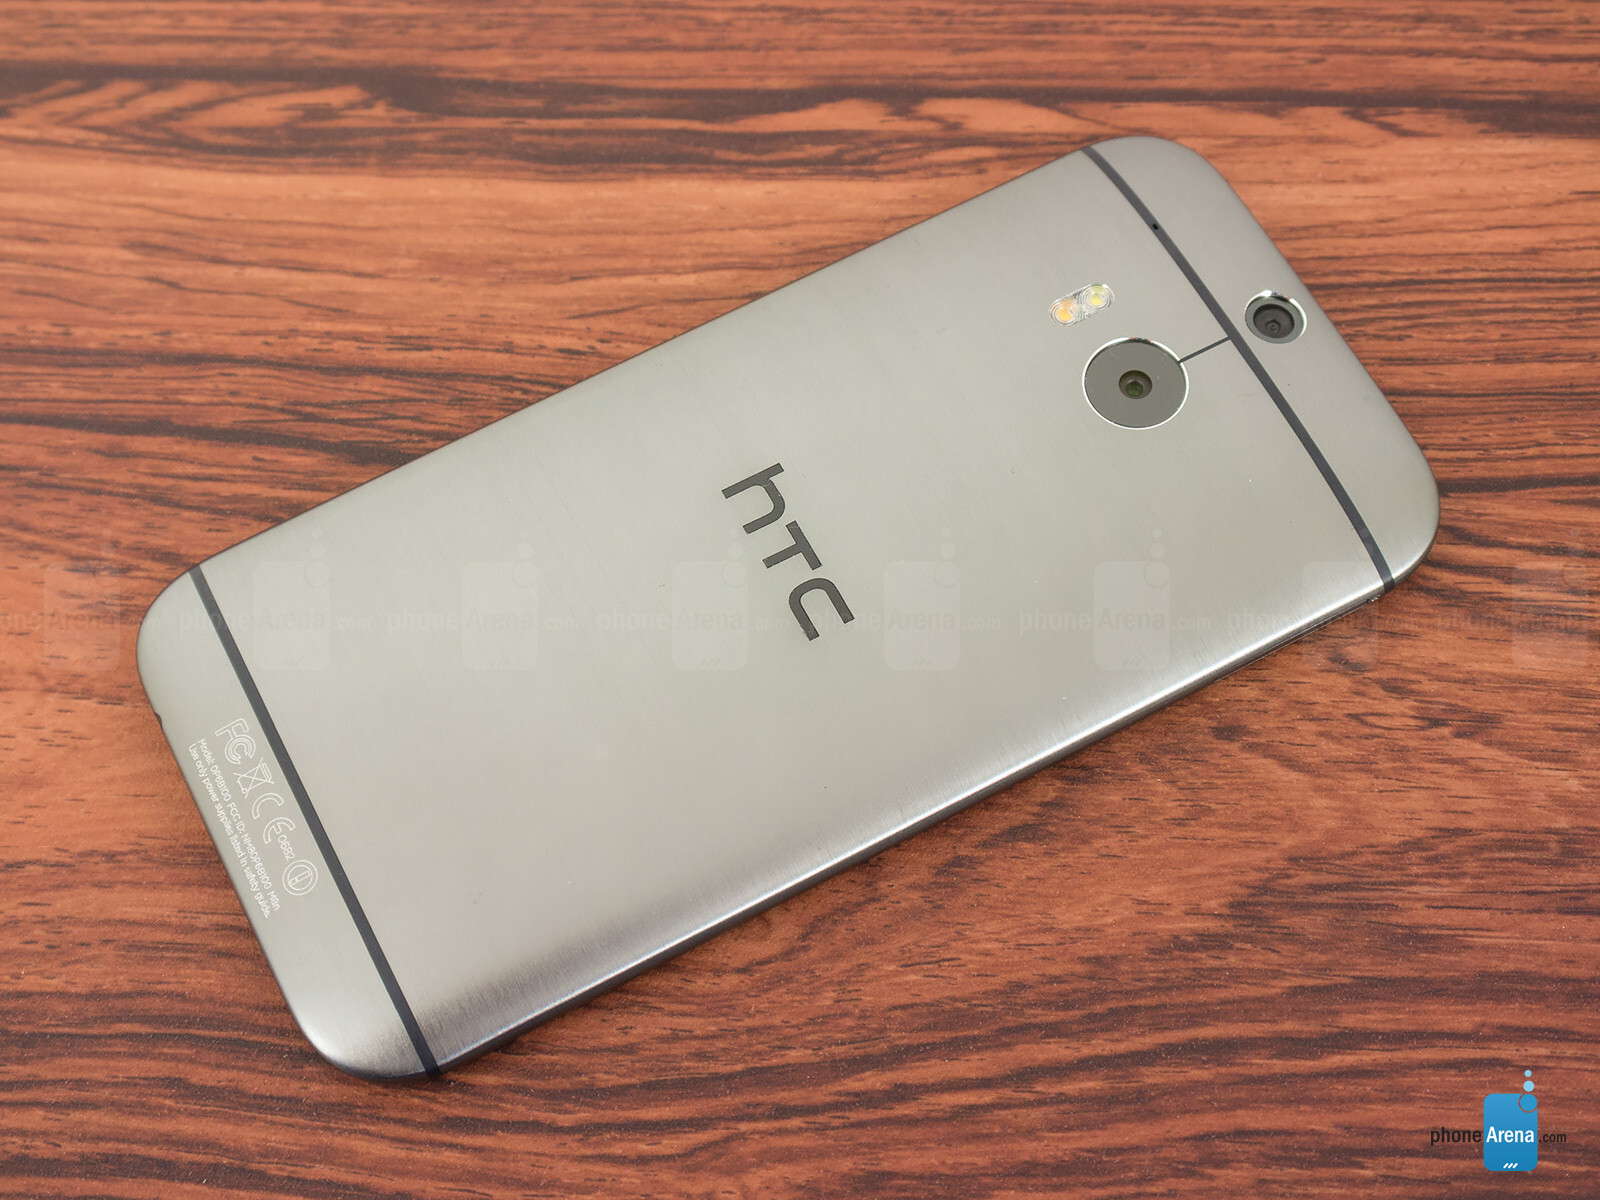 how to put cds into the htc m8